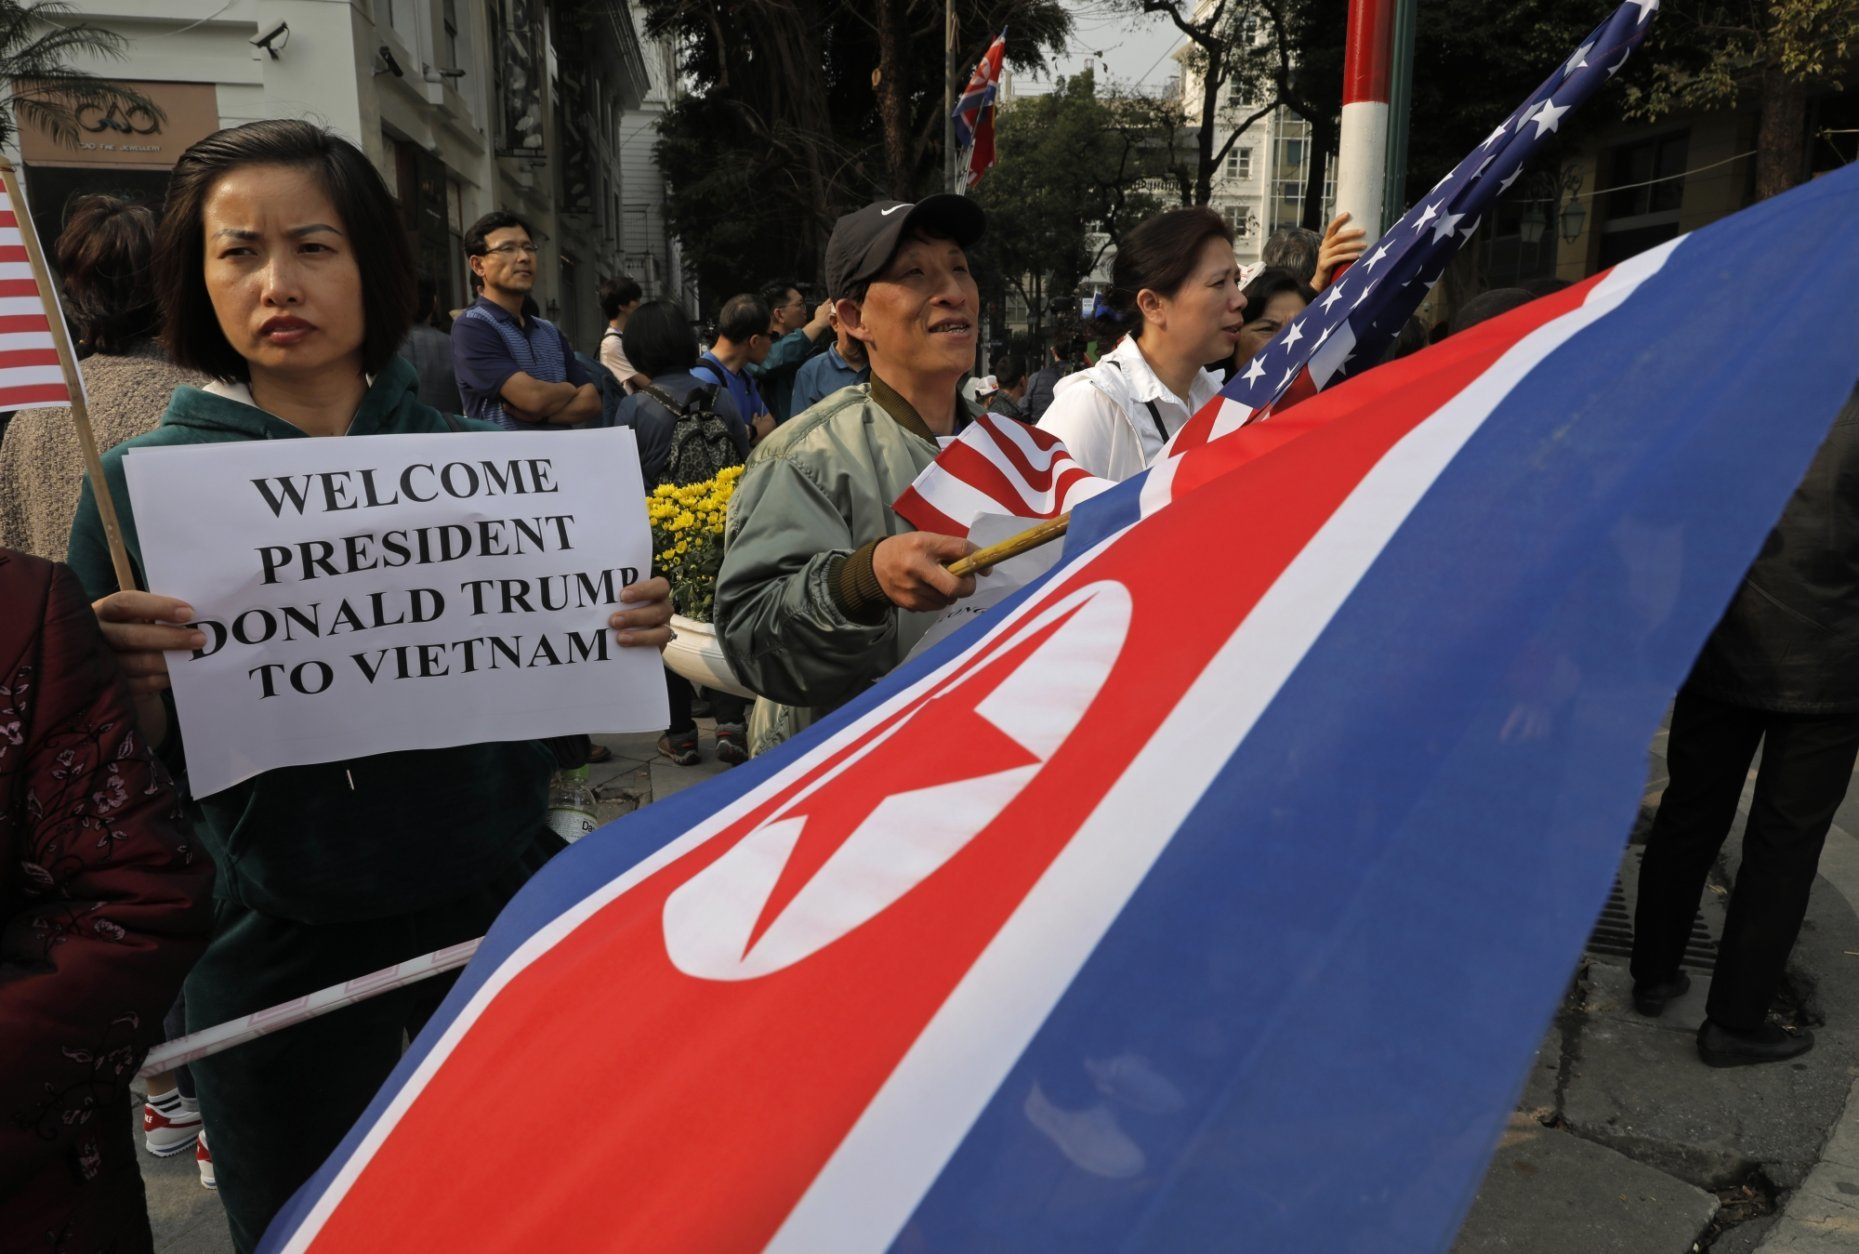 People hold placards and U.S. and North Korea flags outside the Metropole hotel where U.S. President Donald Trump and North Korean leader Kim Jong Un will have dinner in Hanoi, Vietnam, Wednesday, Feb. 27, 2019. The second summit between Trump and North Korean leader Kim Jong Un will take place in Hanoi on Feb. 27 and 28. (AP Photo/Vincent Yu)